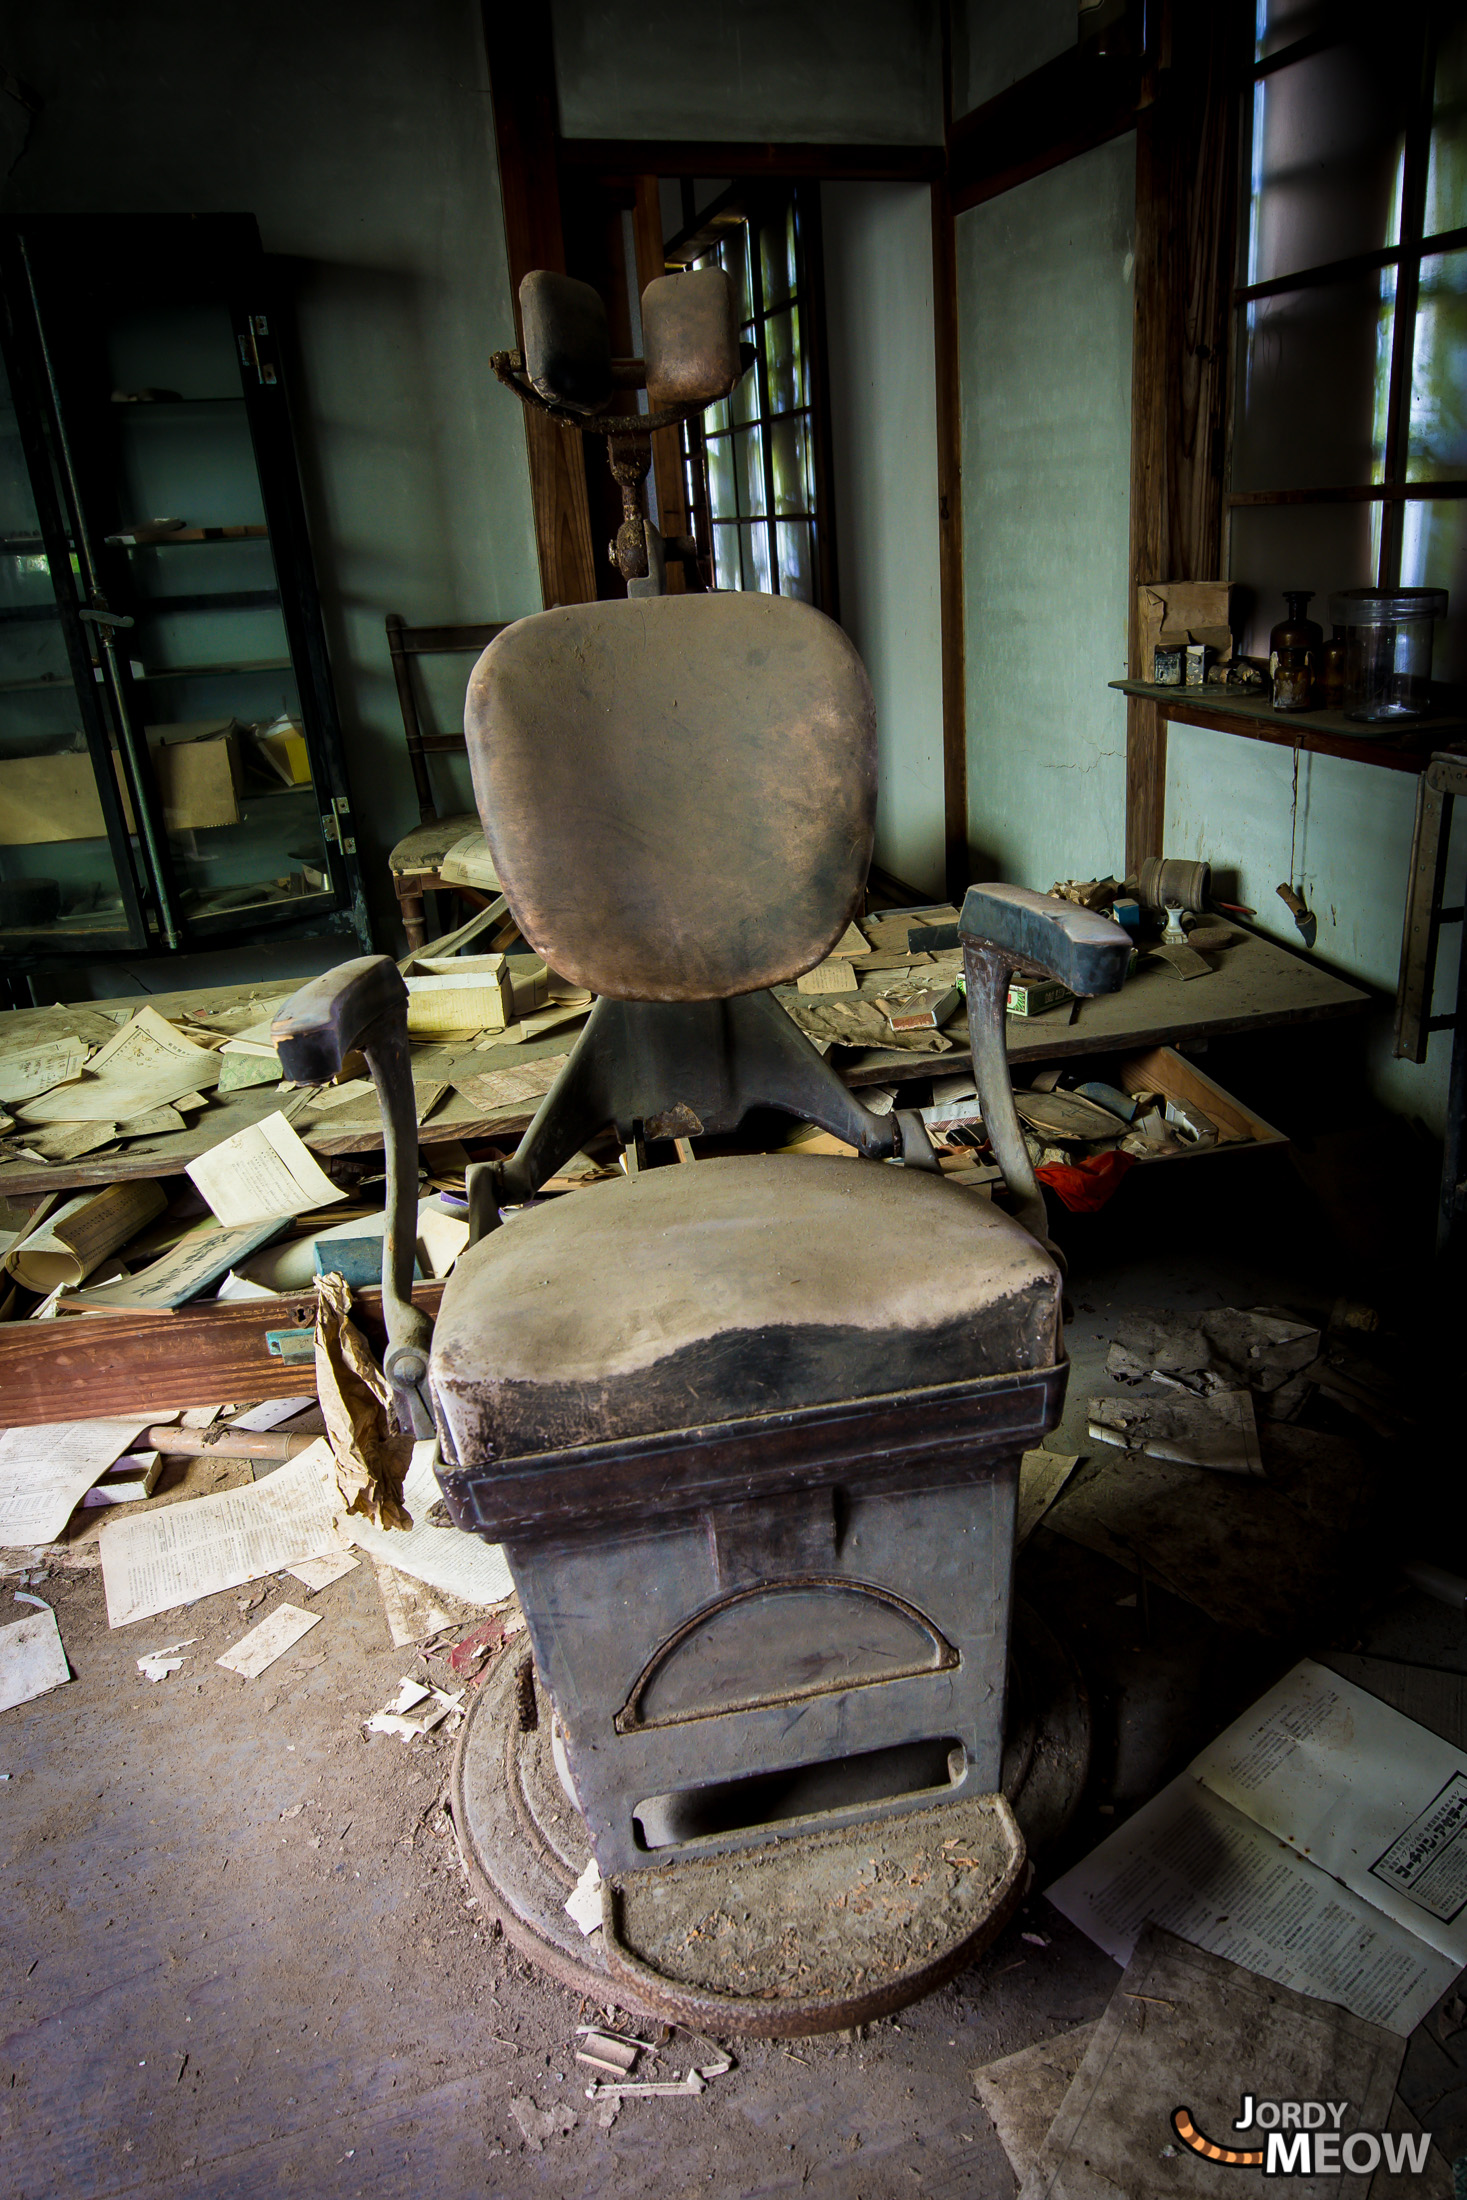 Abandoned Hospitals - The Hellish Chair